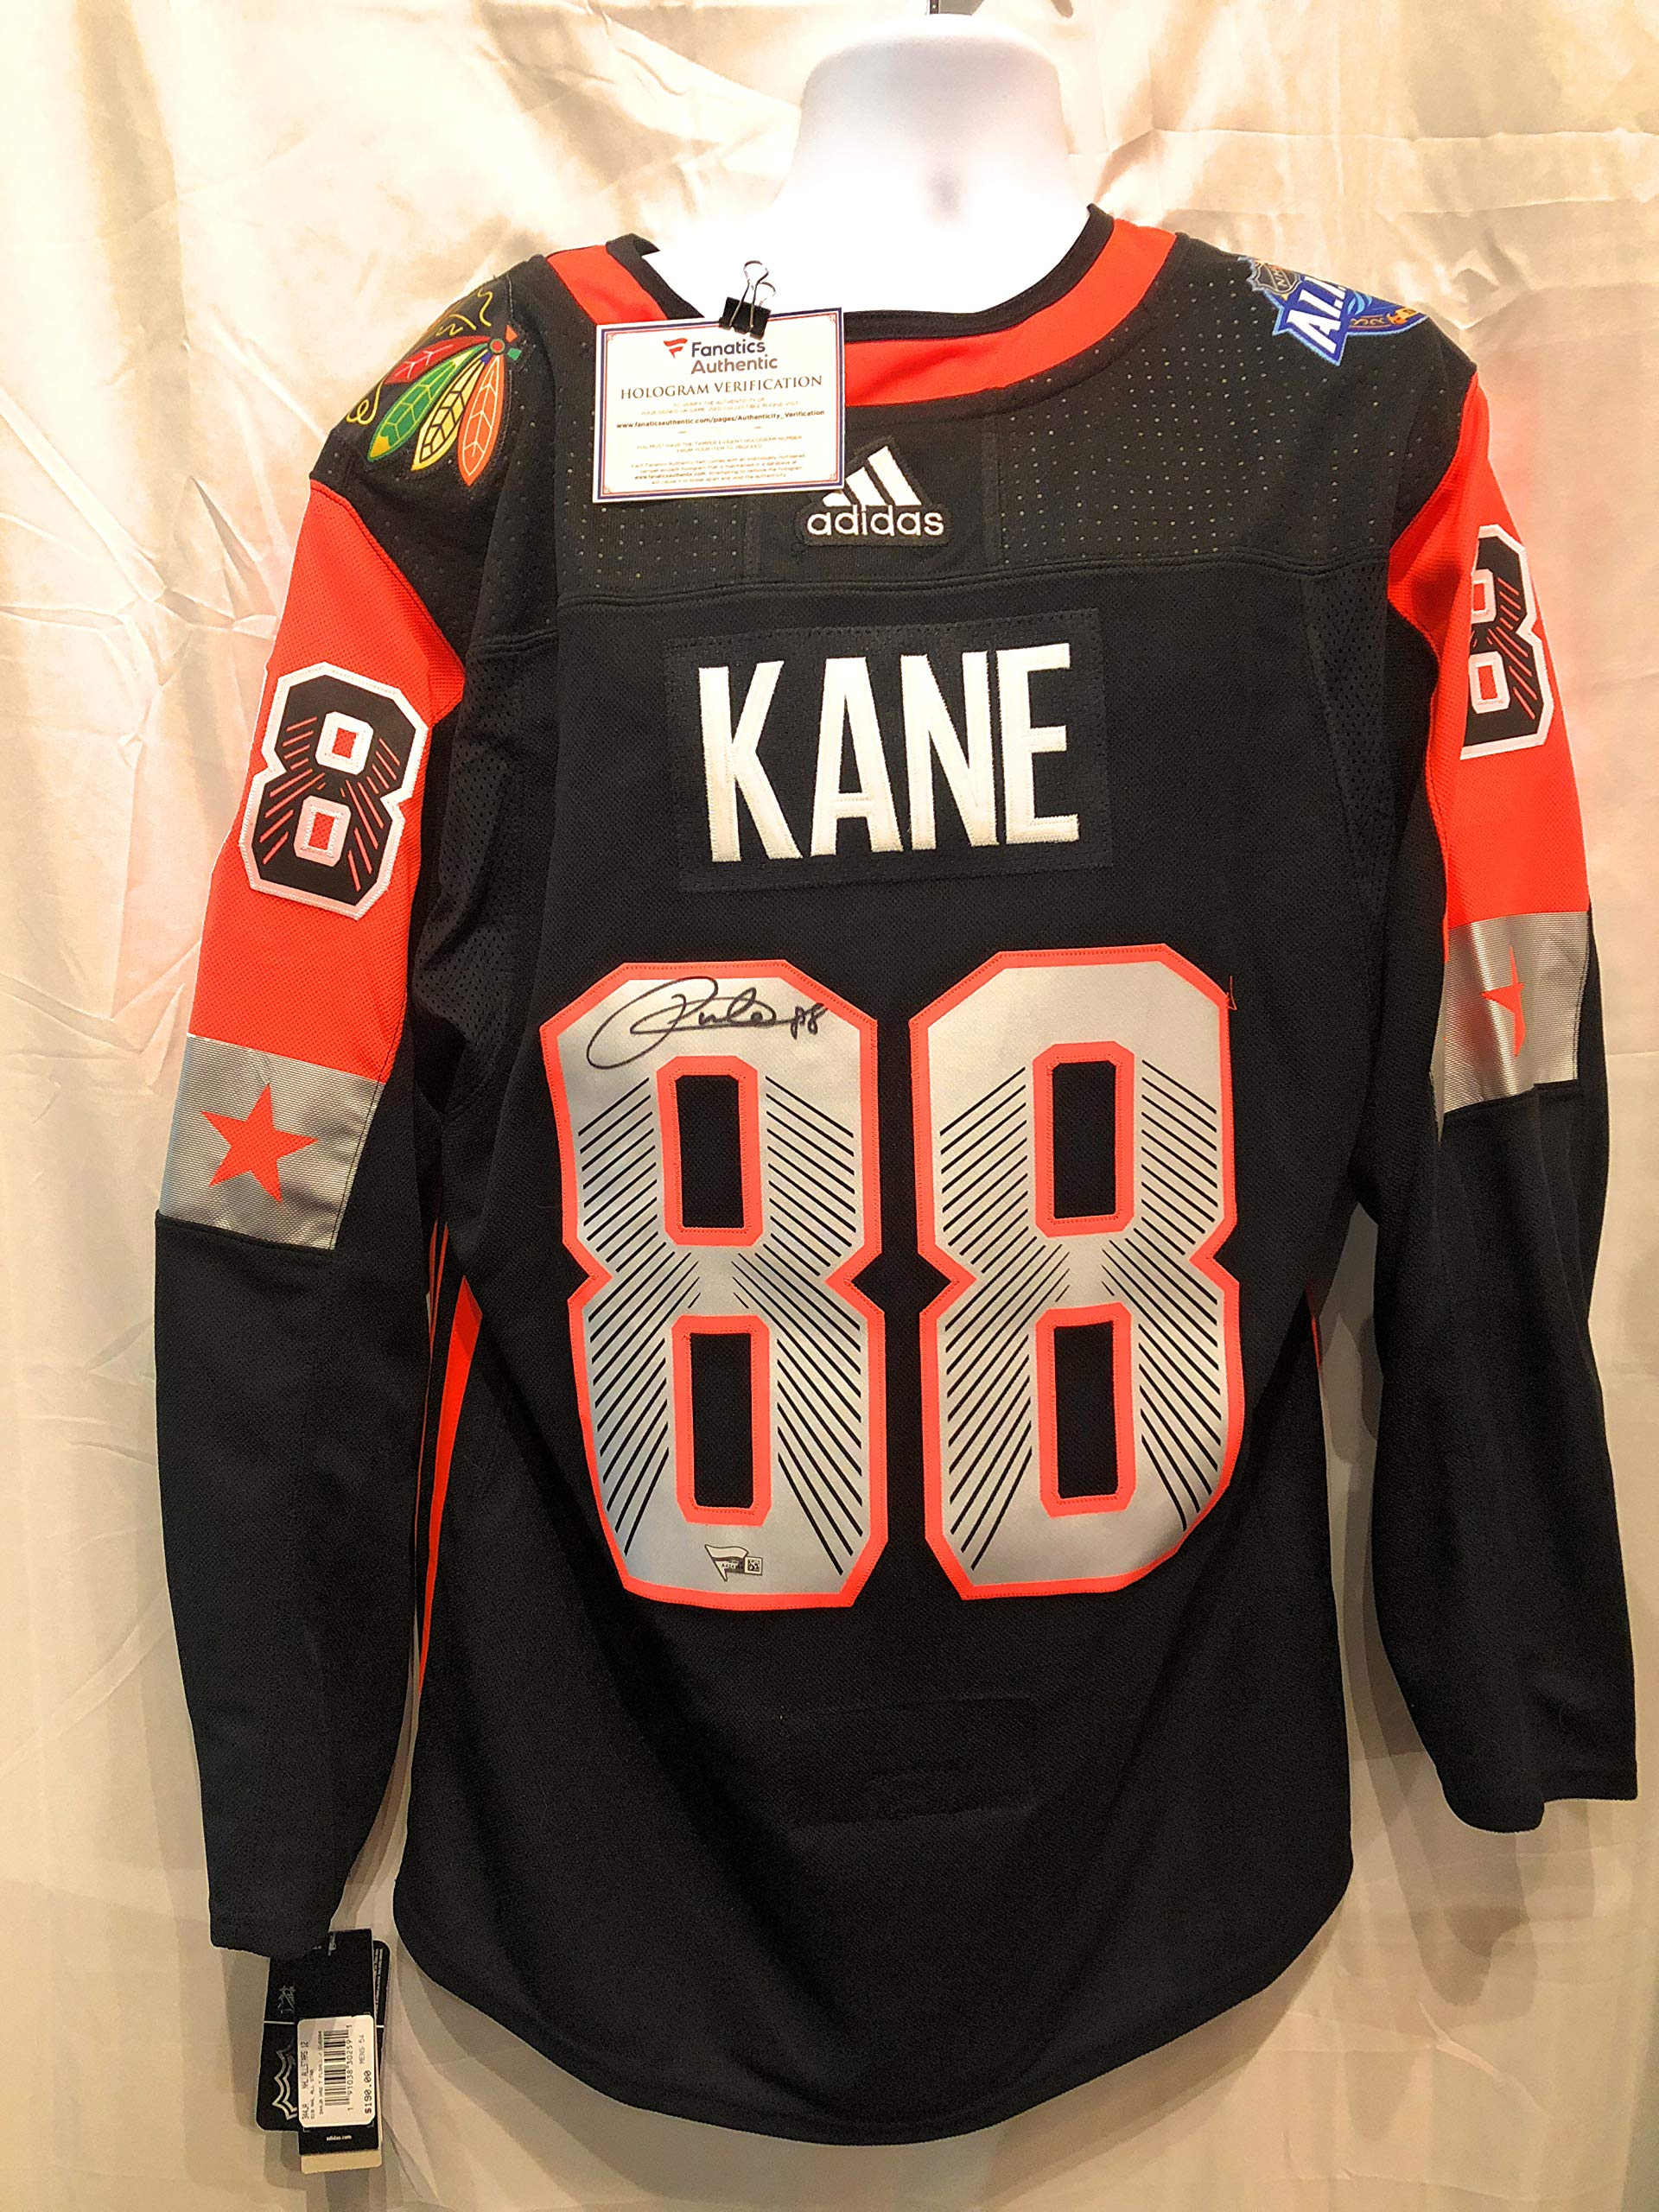 Patrick Kane Chicago Blackhawks Signed Autograph Authentic 2018 NHL All Star Game Jersey Fanatics Authentic Certified